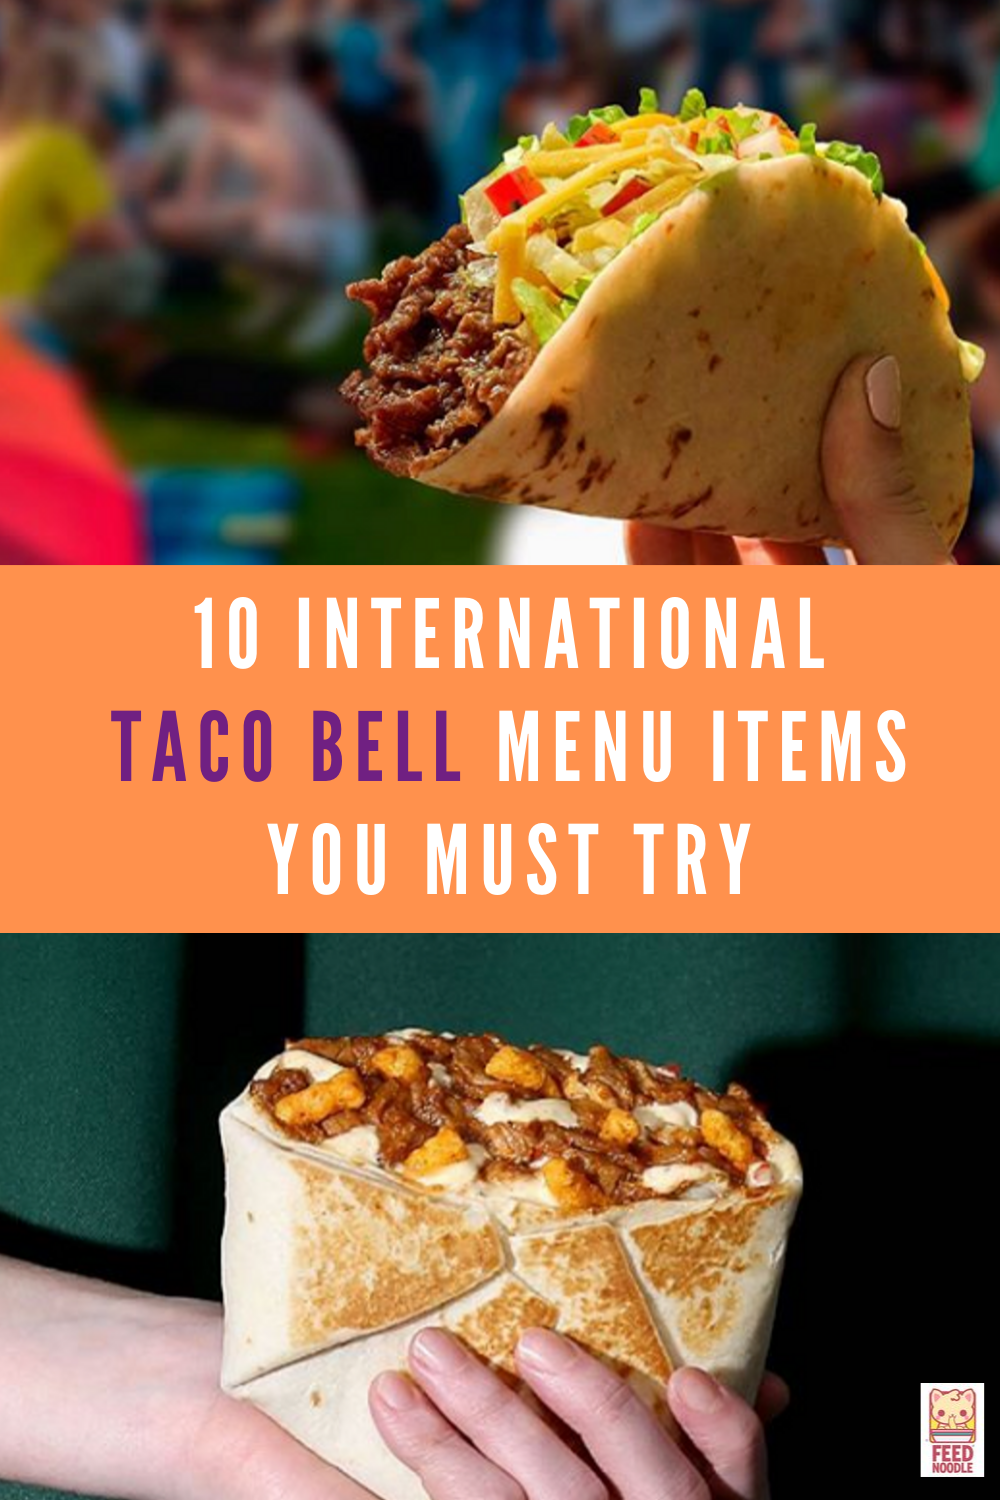 Great fast food ideas from Taco Bell that'll spur your